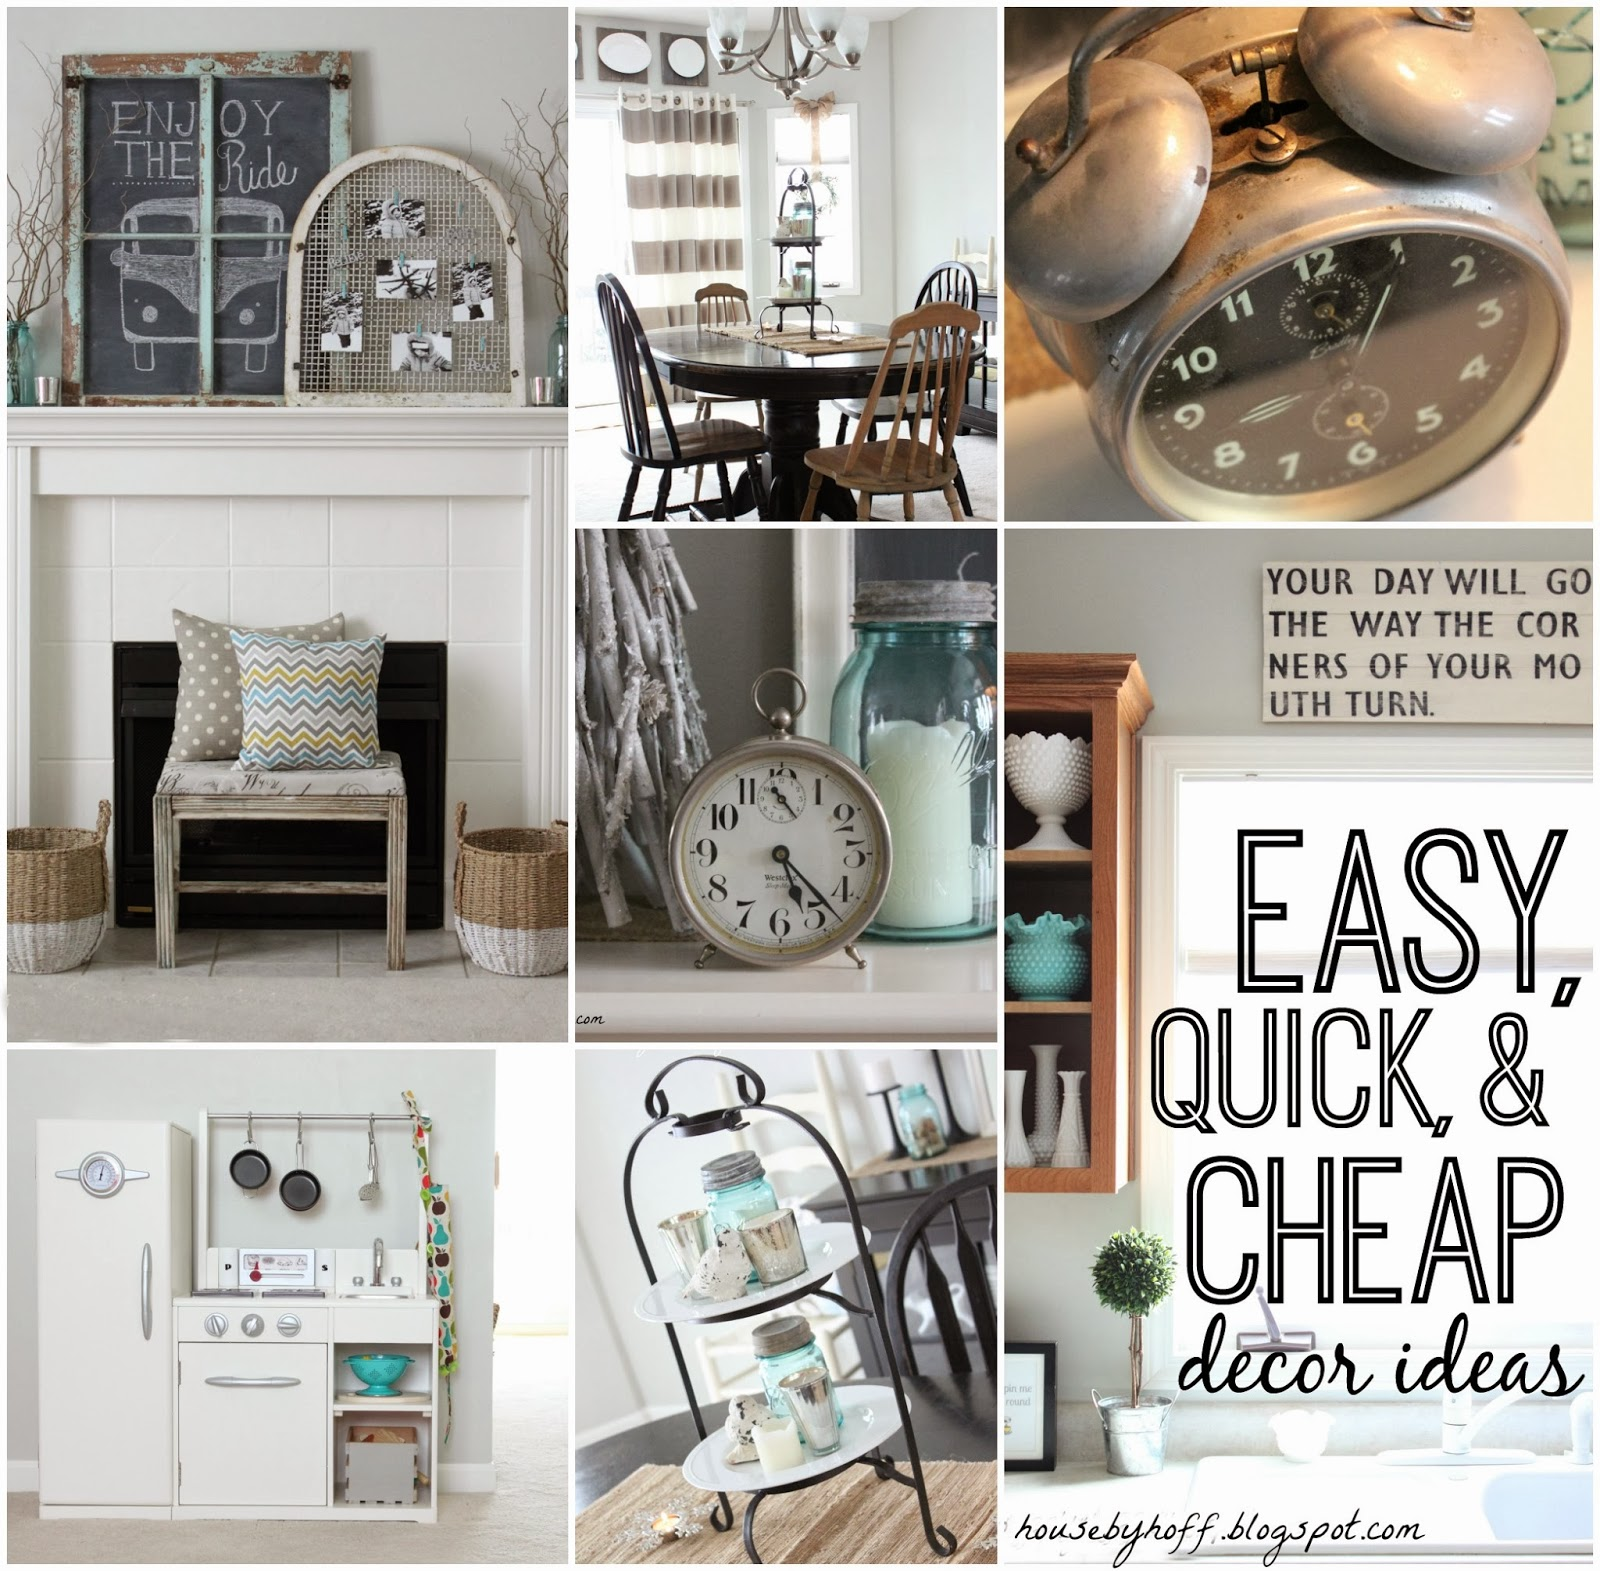 Home Decorating Ideas For Cheap Cheap Home Decor Best: Updated Home Tour {January Decorating Recap}